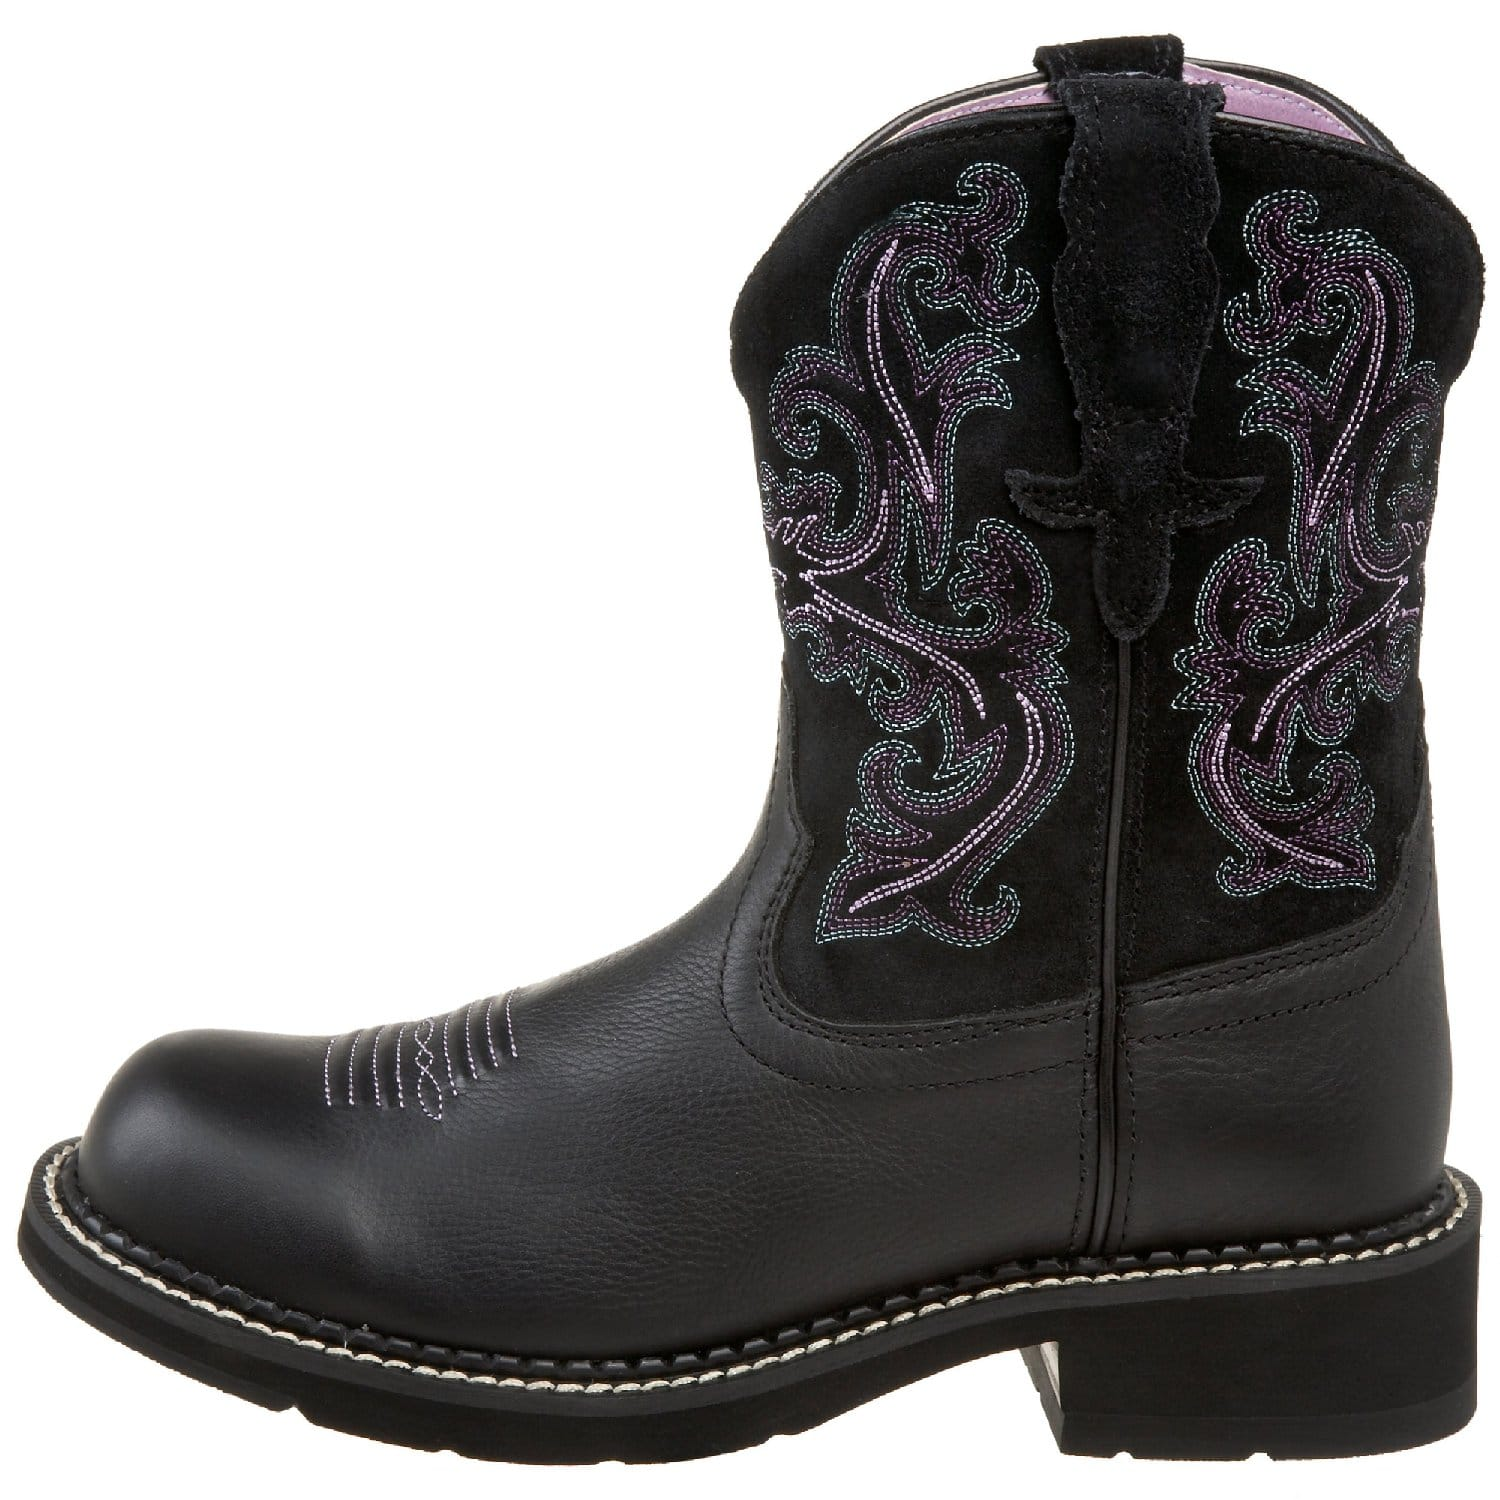 Ariat Women s Fat baby II Durable & Fashionable Boot Review Work